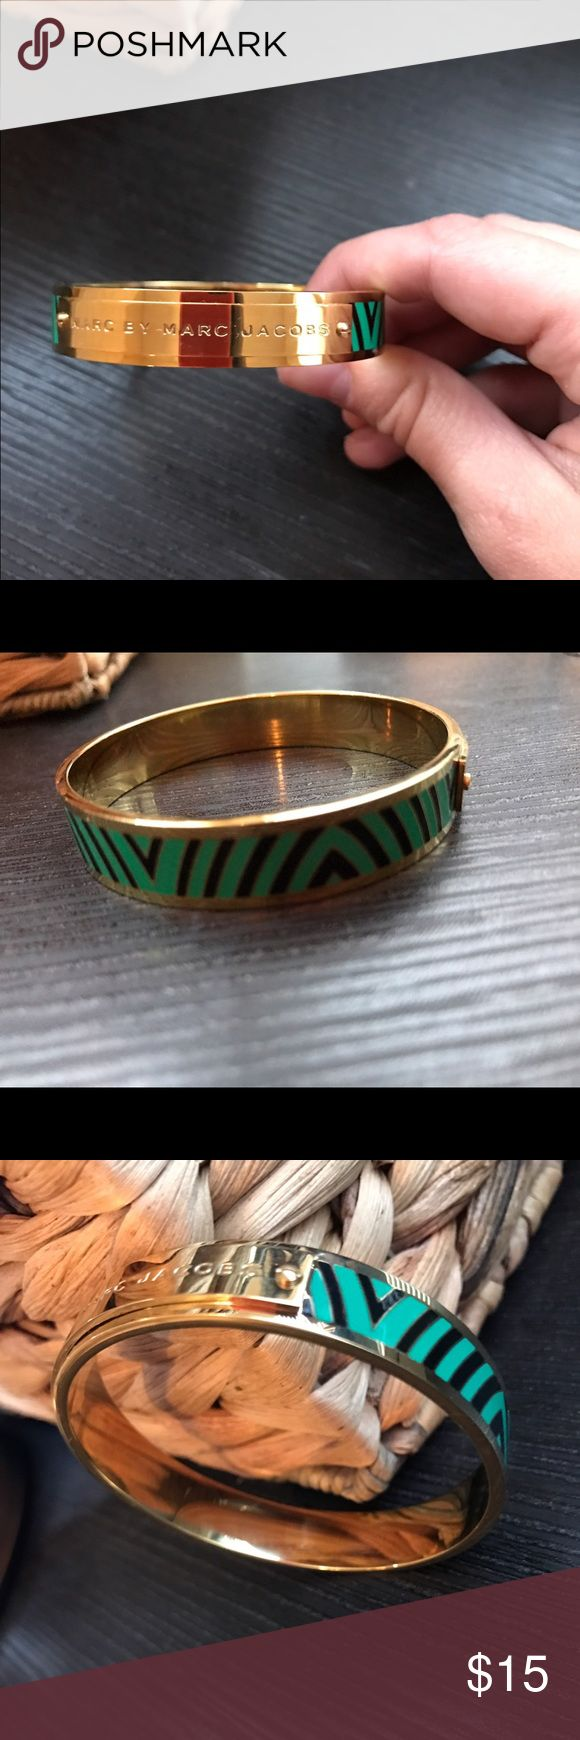 Marc Jacobs Bracelet Only worn once. In great condition Marc by Marc Jacobs Jewelry Bracelets